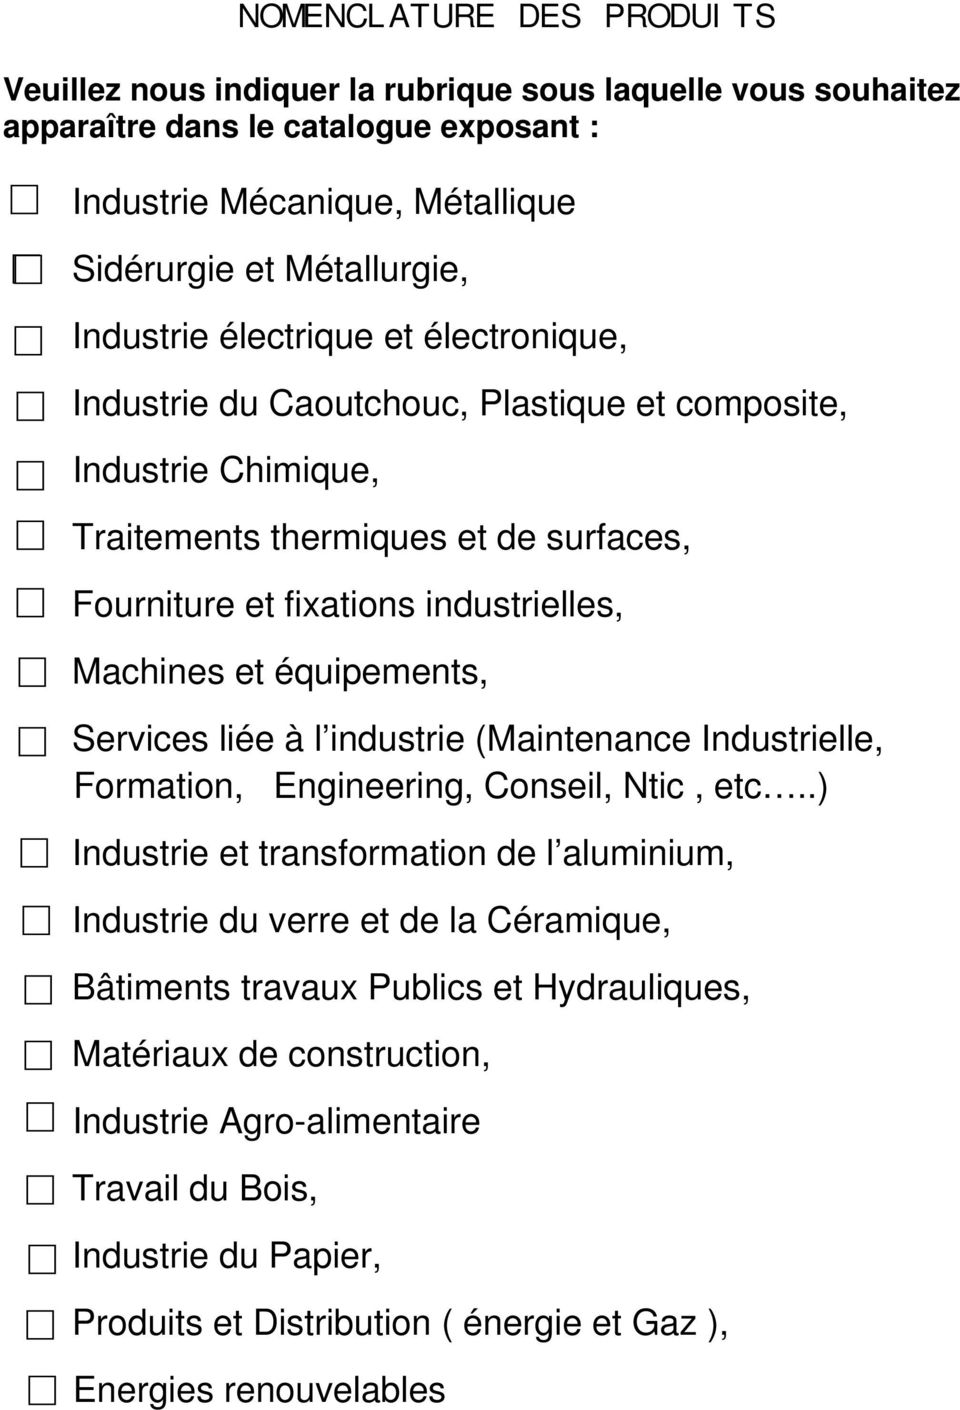 équipements, Services liée à l industrie (Maintenance Industrielle, Formation, Engineering, Conseil, Ntic, etc.